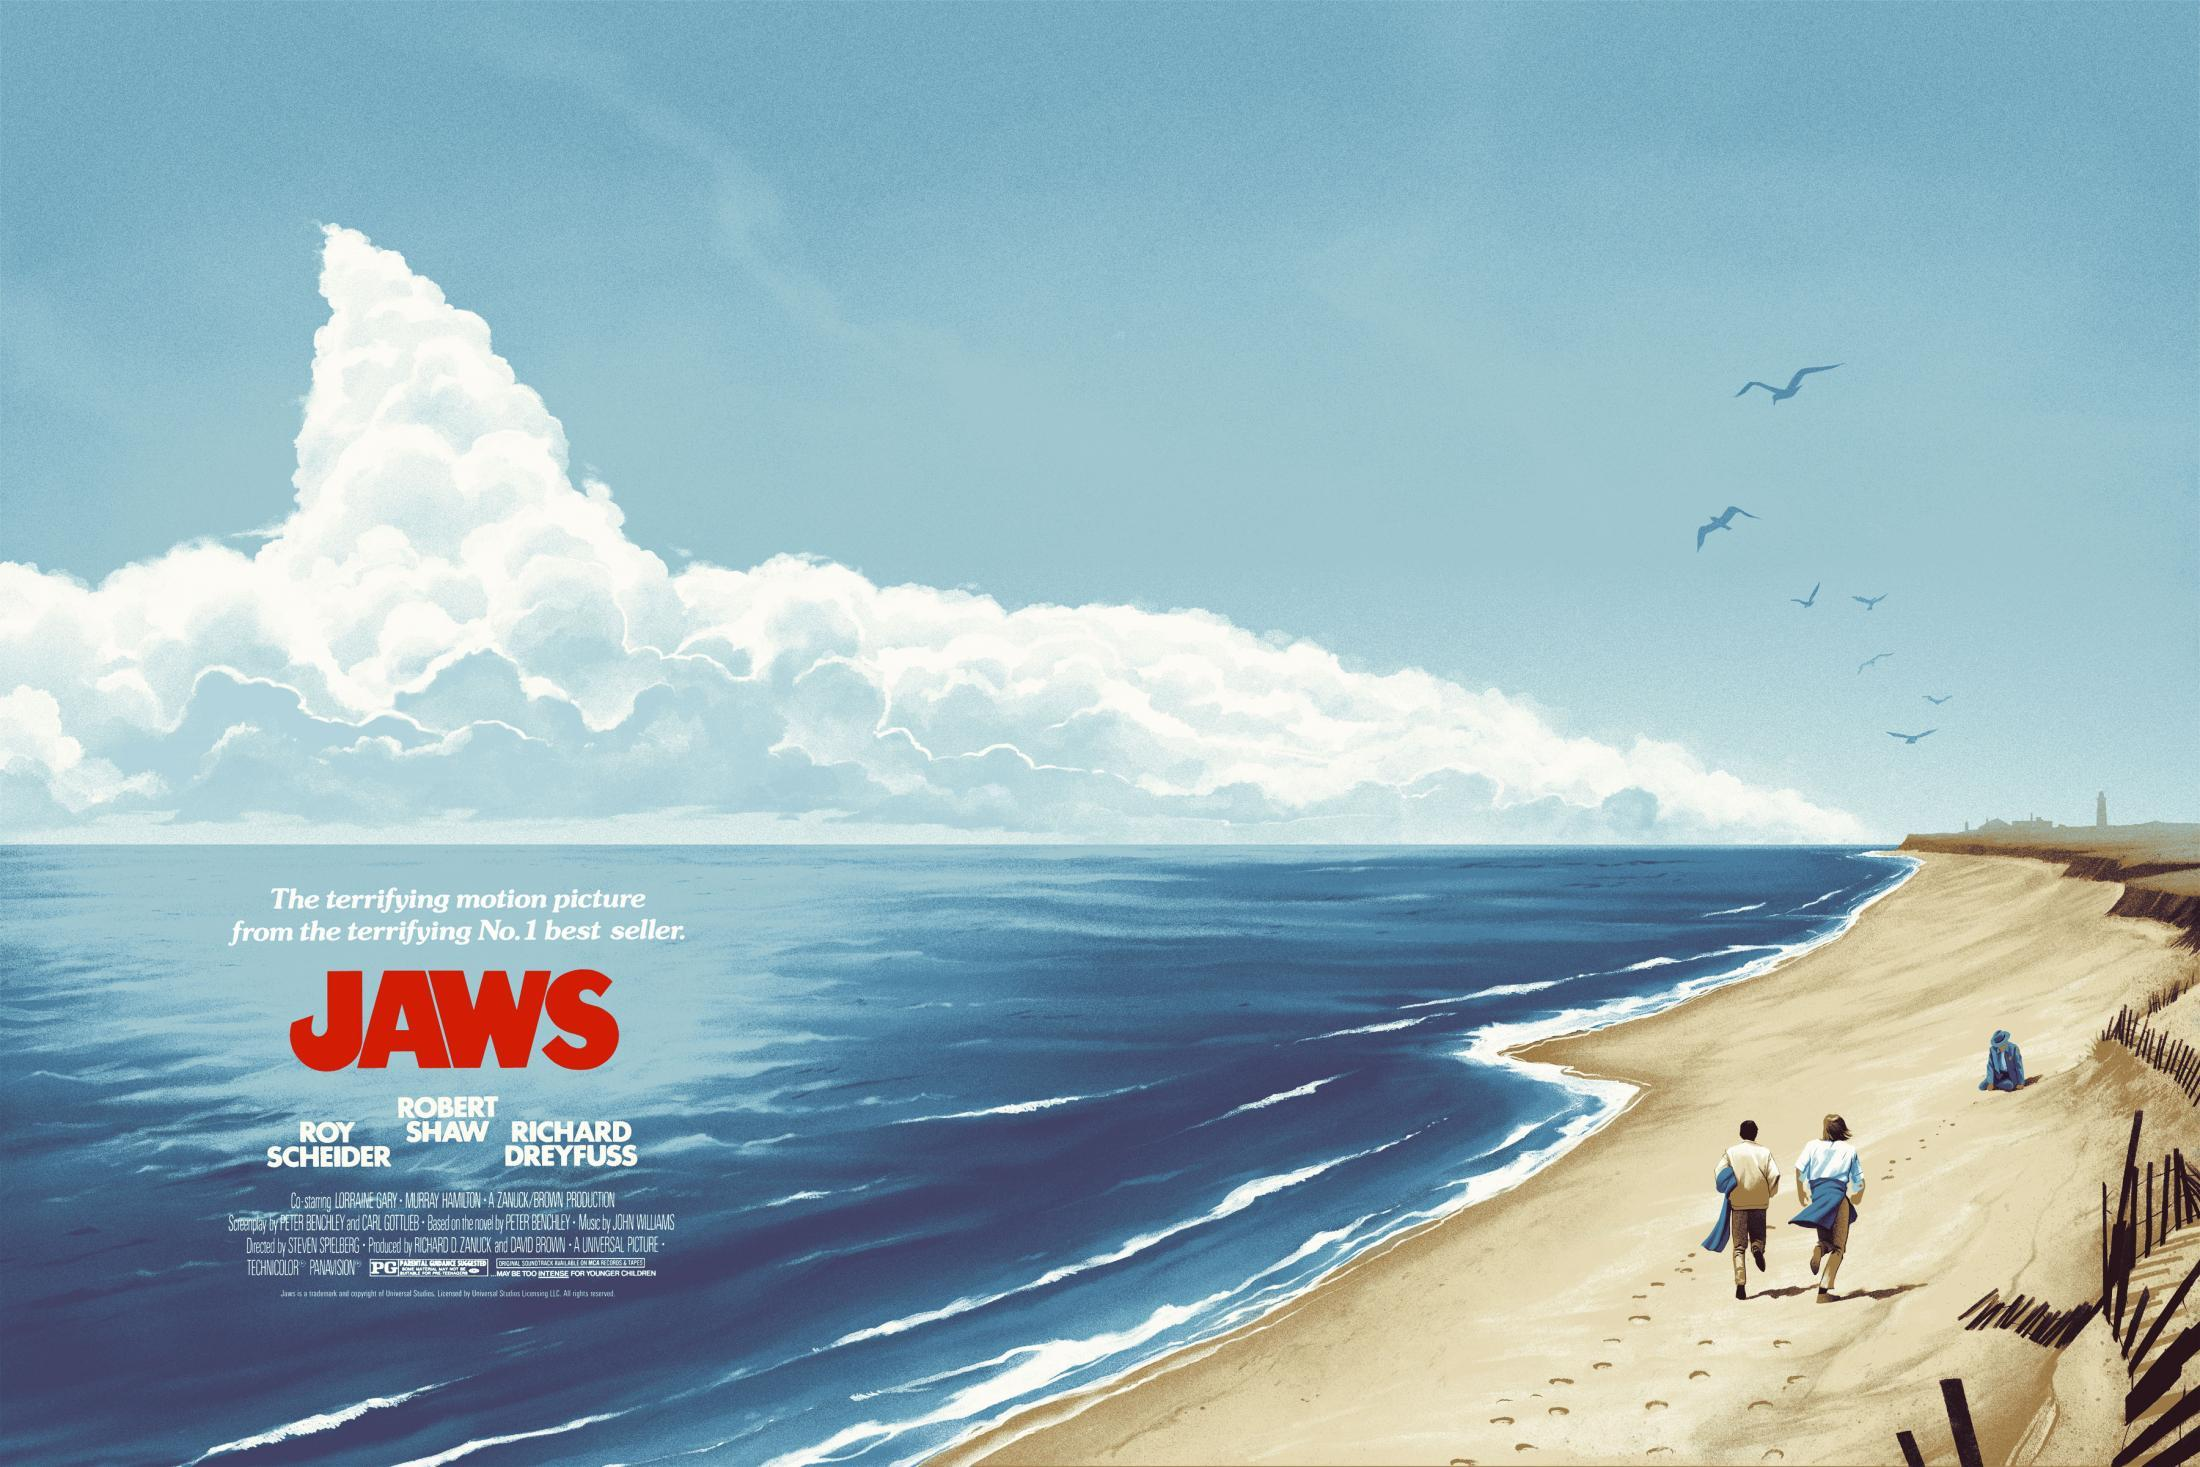 Jaws Print Ad - Jaws on the Water